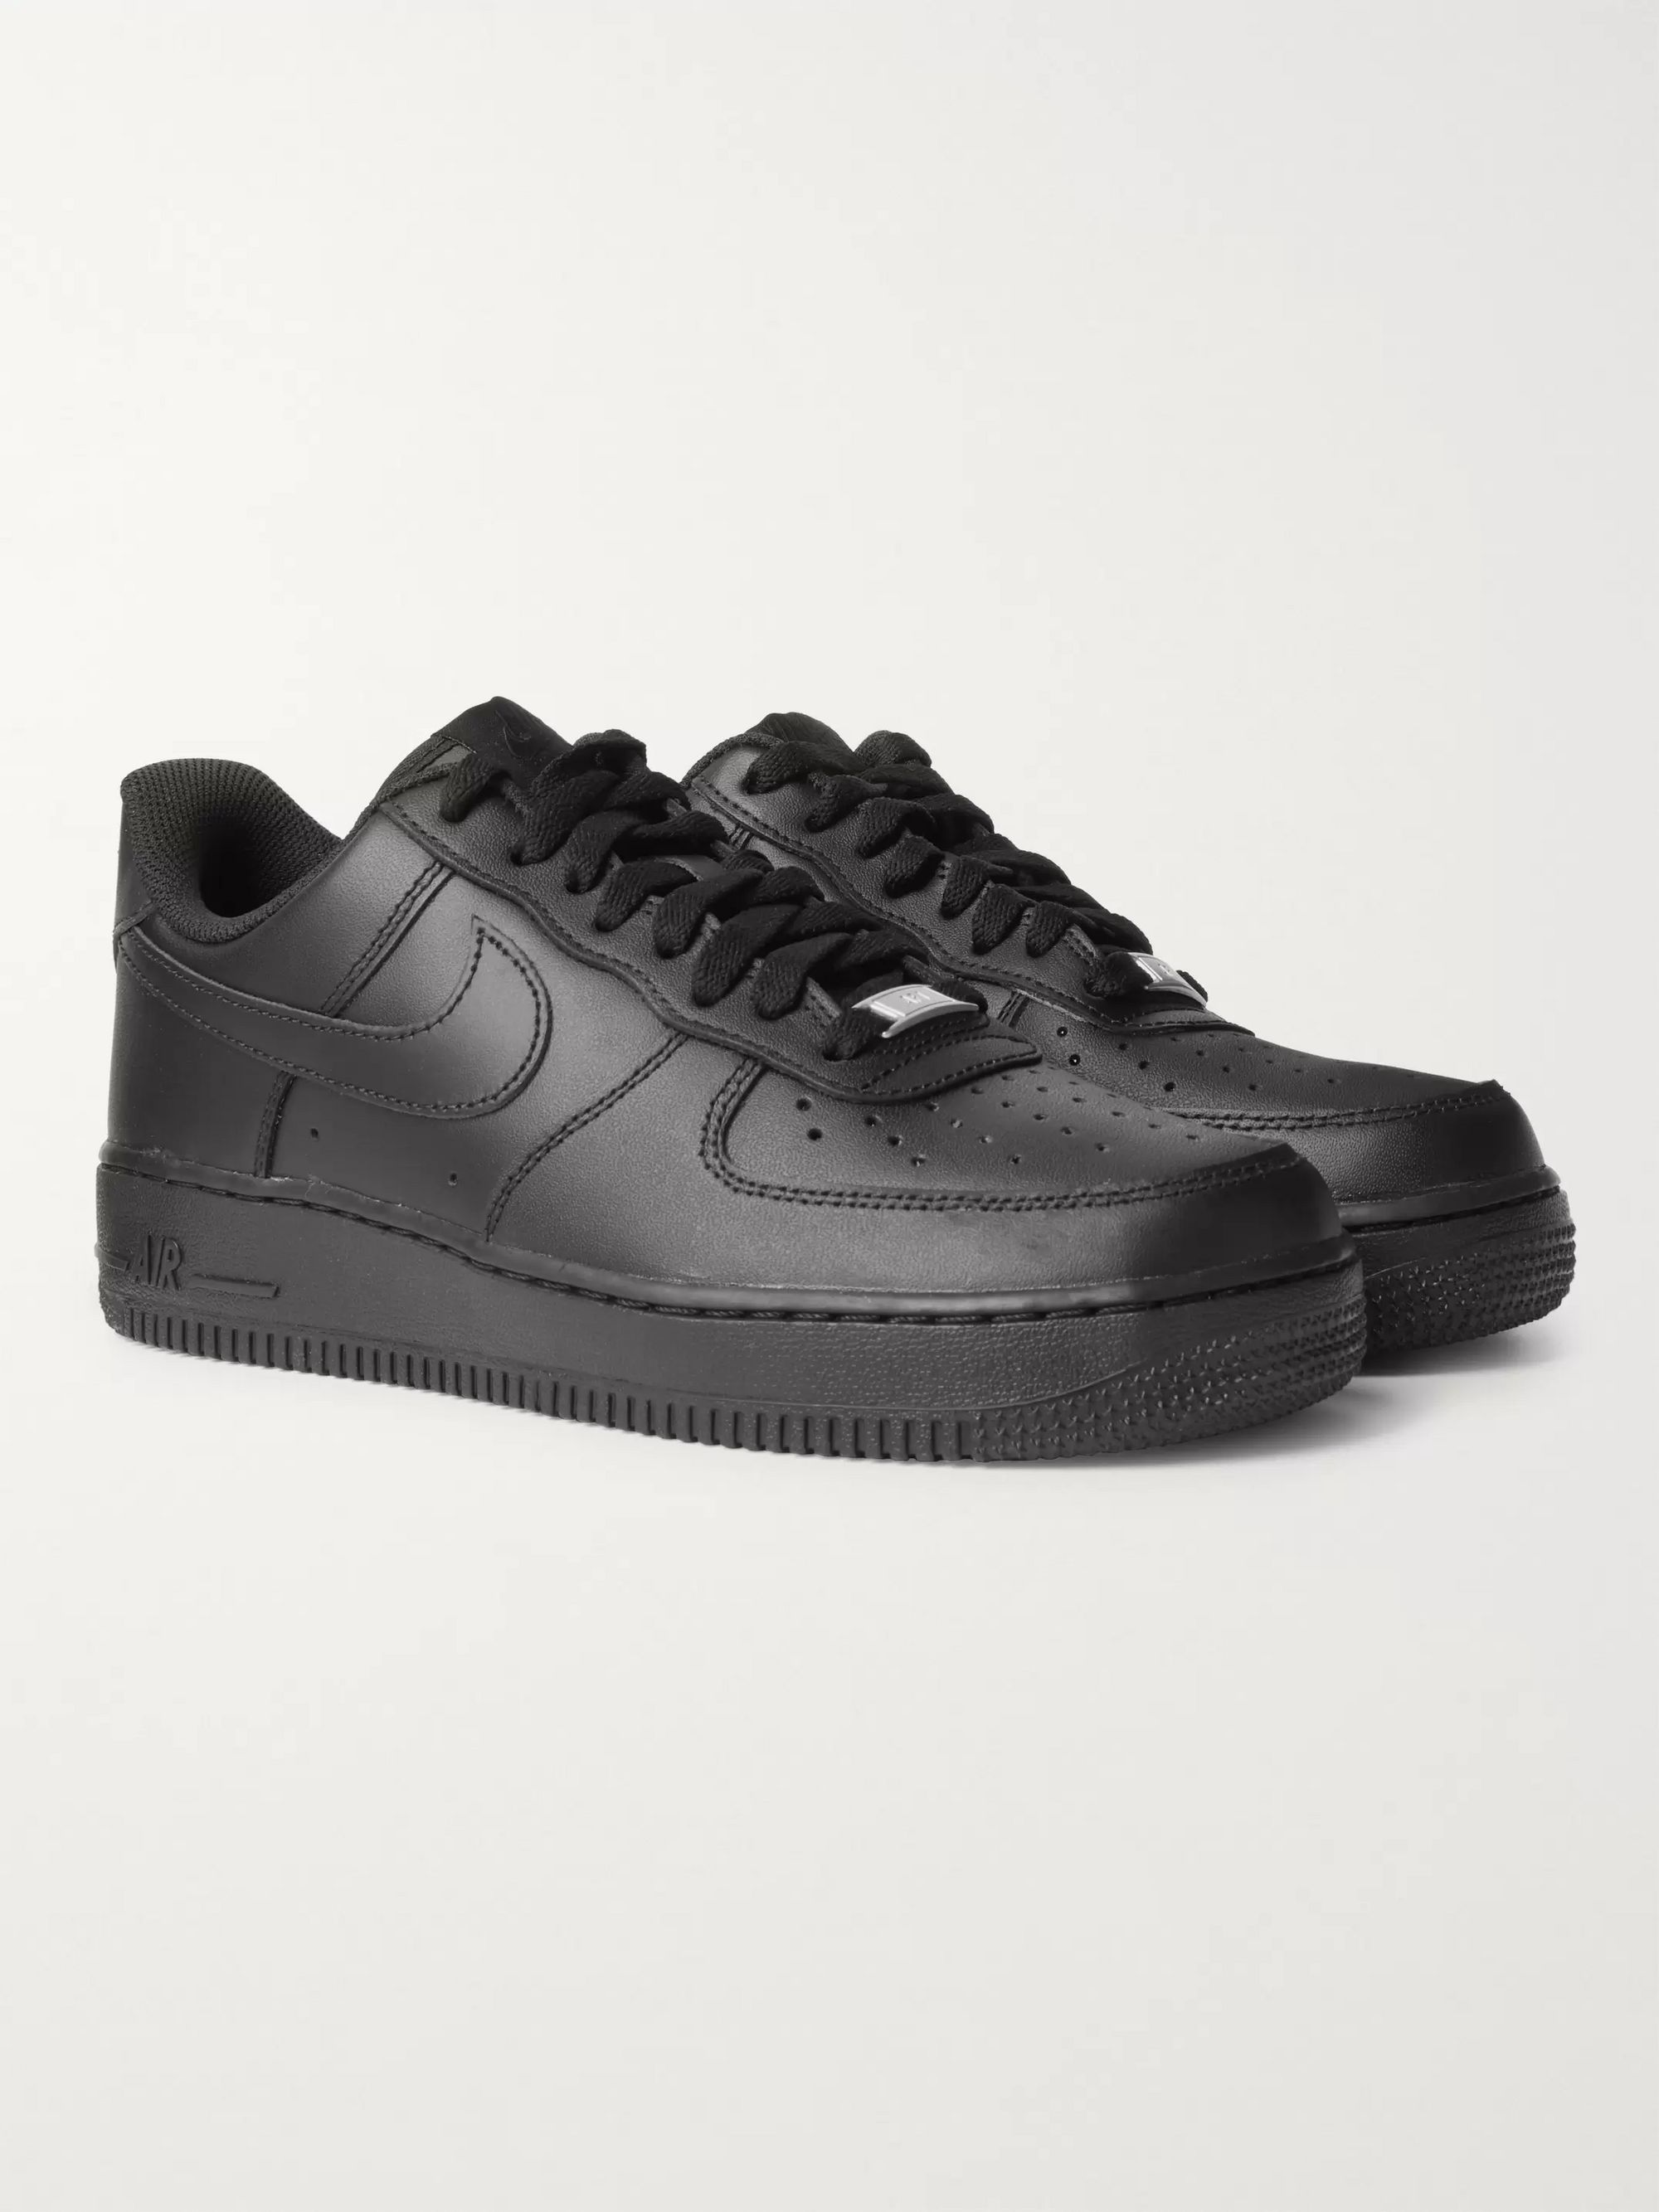 Nike Air Force 1 '07 Leather Sneakers